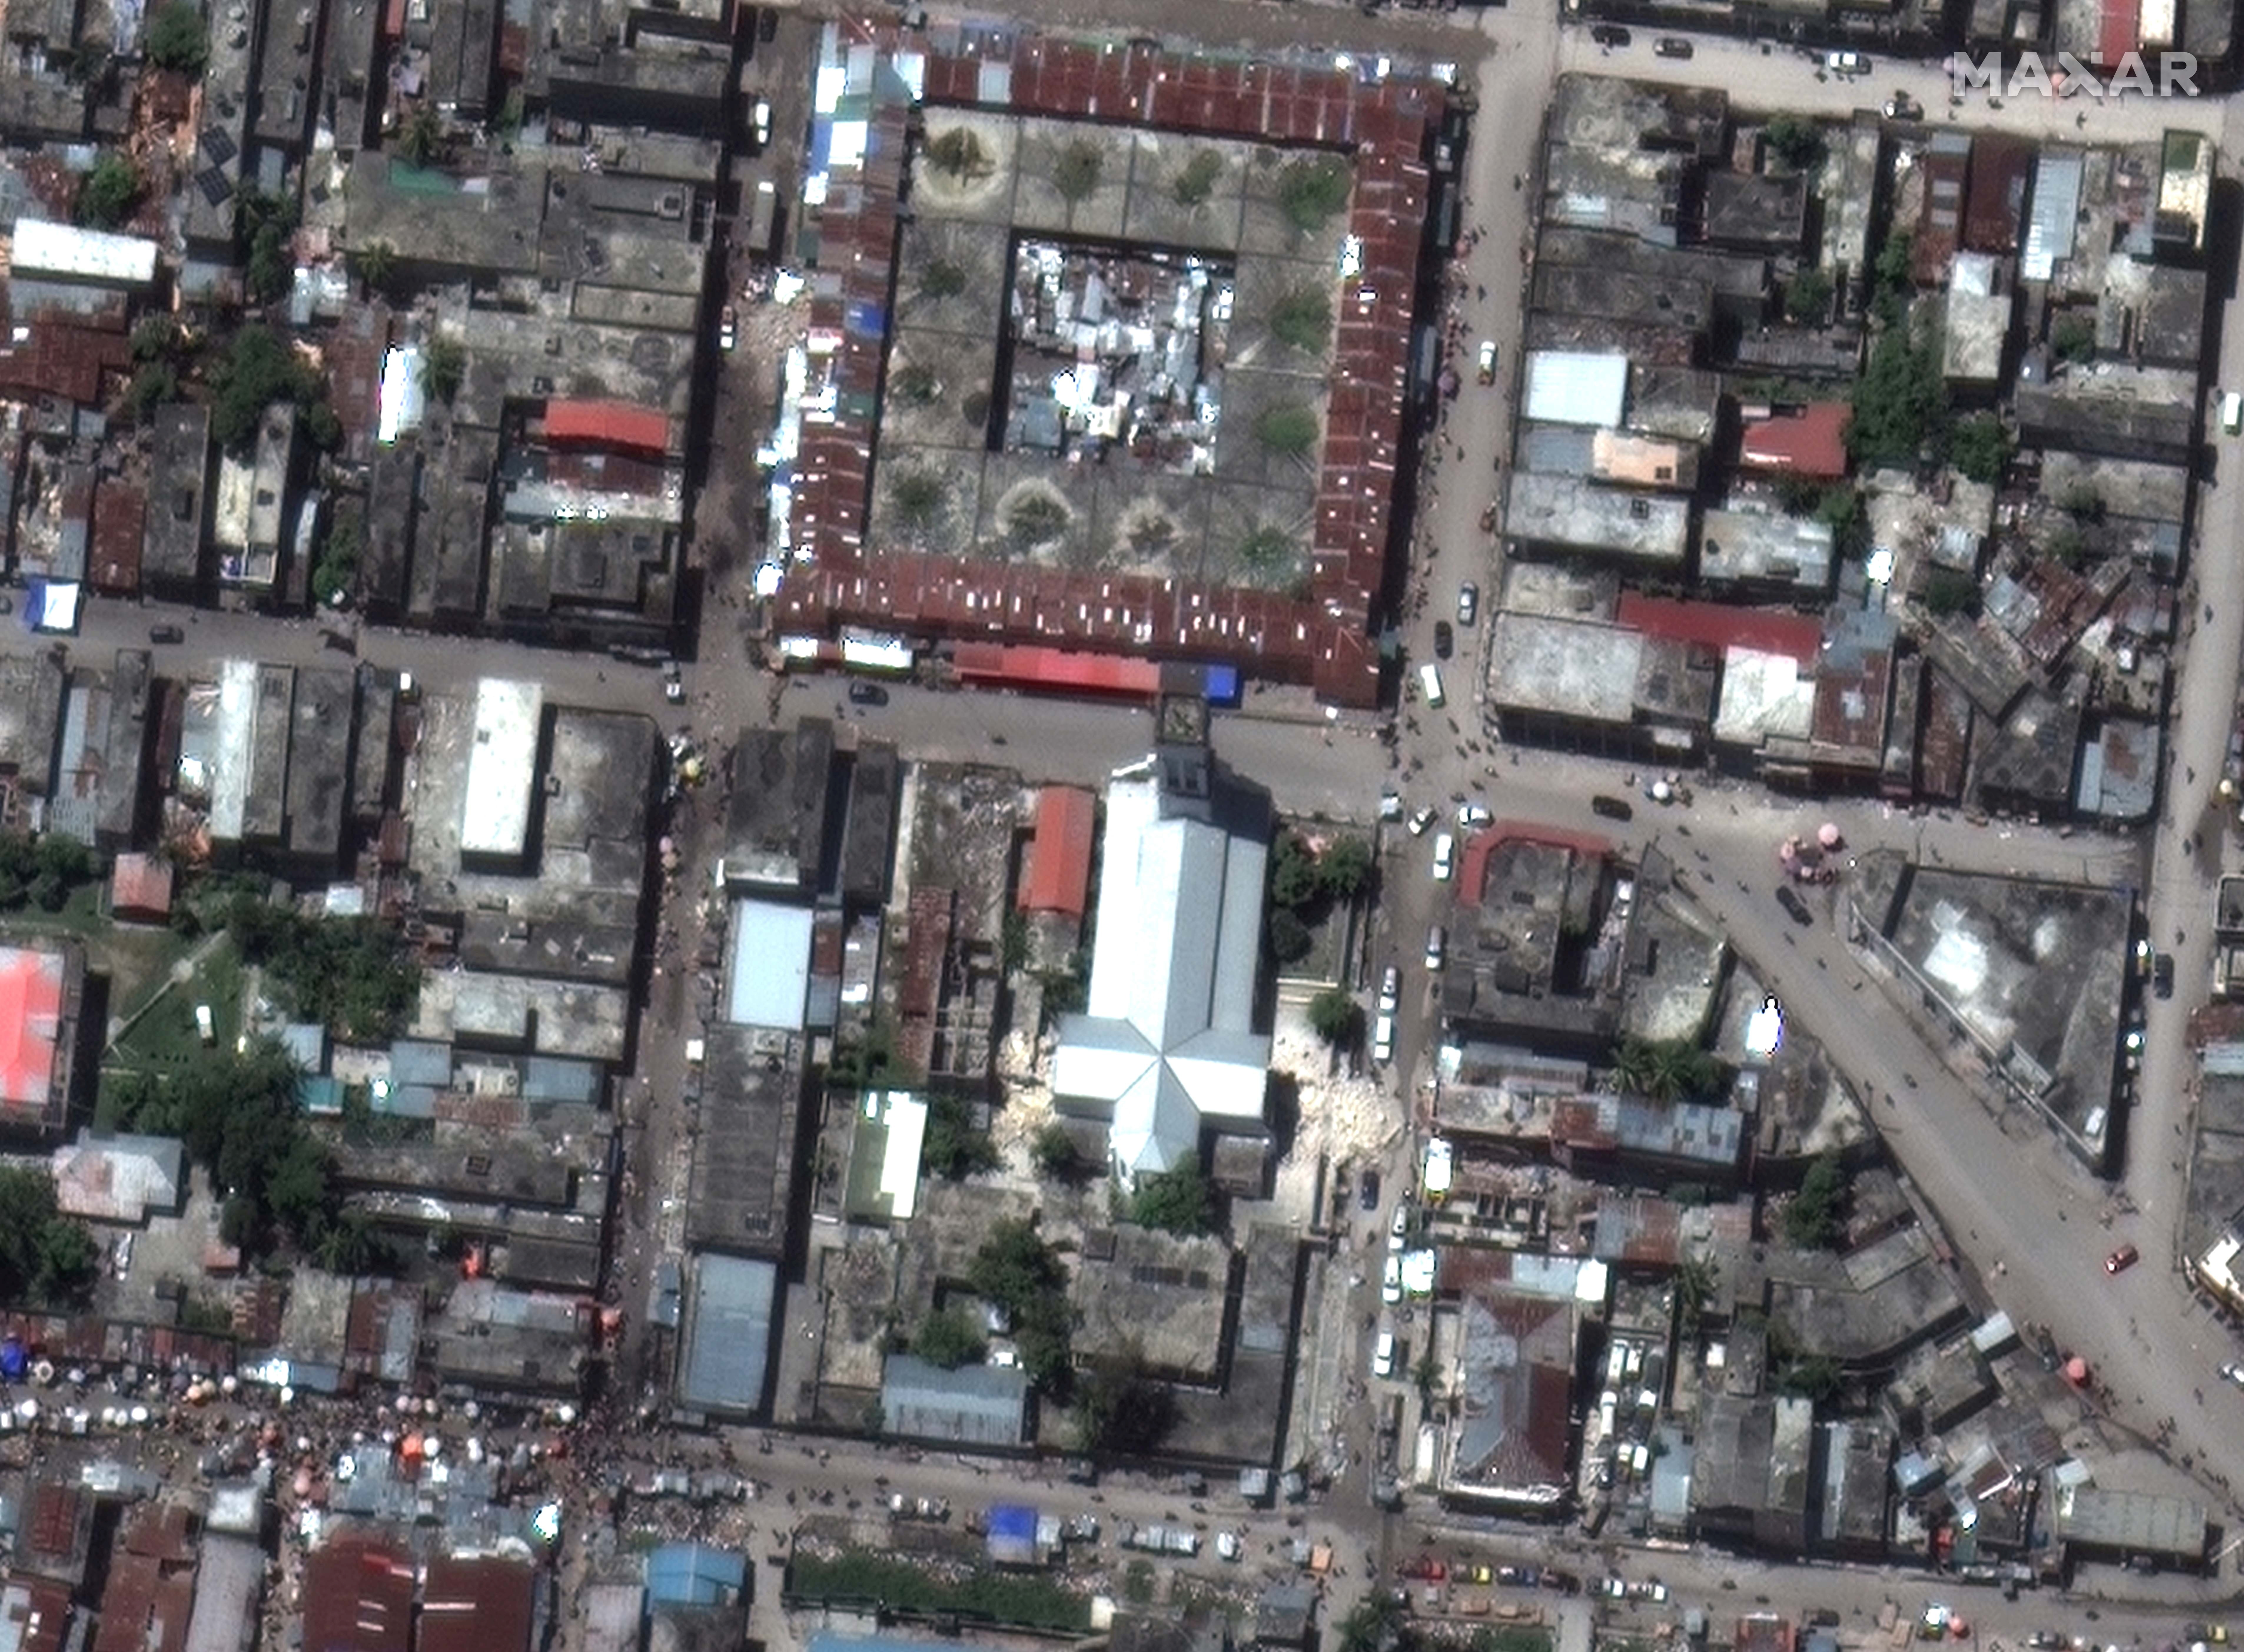 A satellite image shows the damaged Sacre Coeur des Cayes church in Les Cayes, after a 7.2 magnitude earthquake struck Haiti, August 15, 2021. SATELLITE IMAGE 2021 MAXAR TECHNOLOGIES/Handout via REUTERS